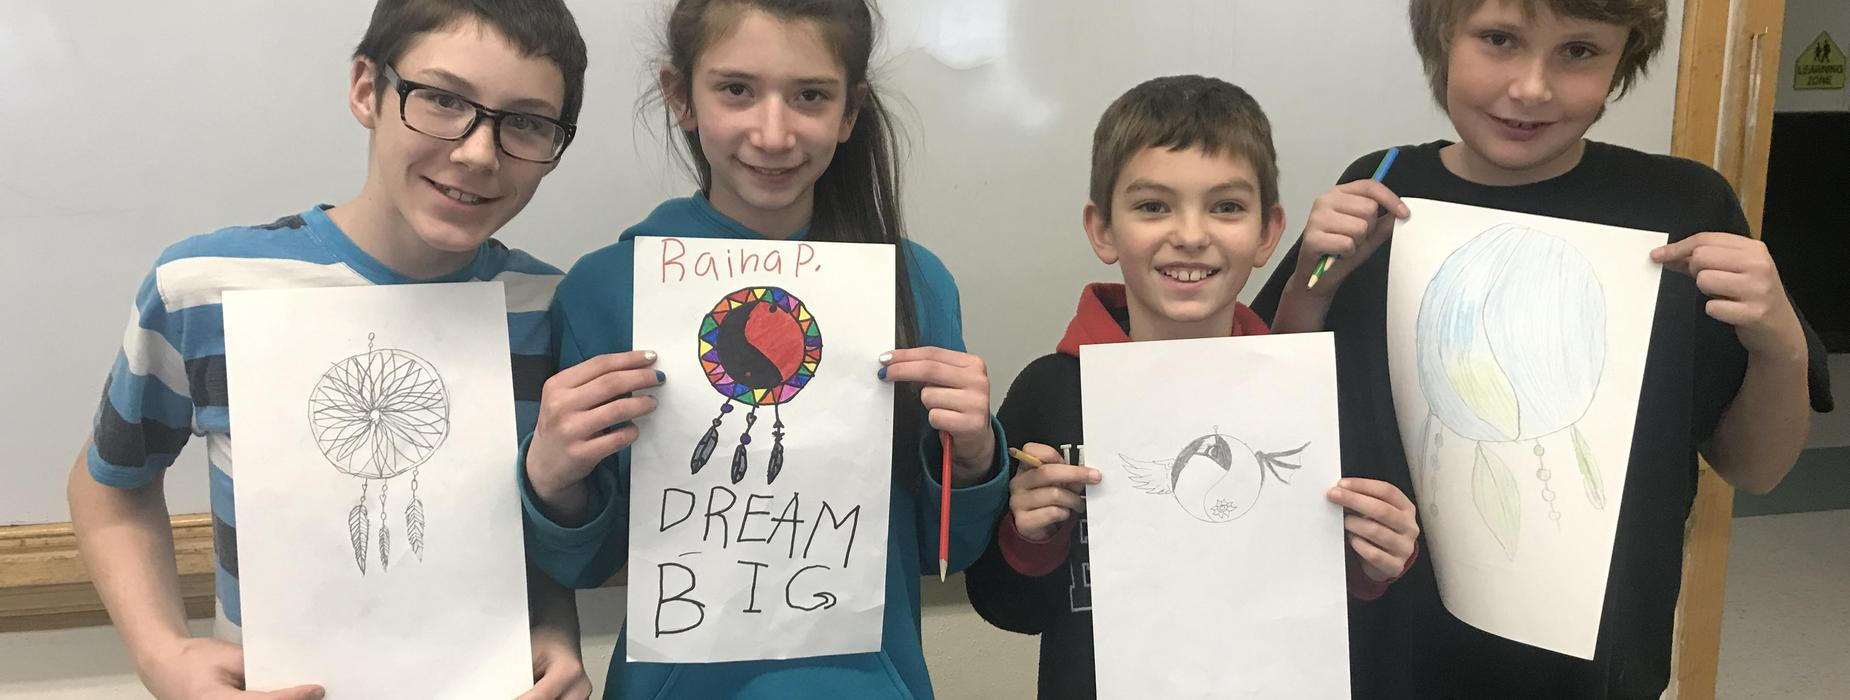 Students with their artwork.